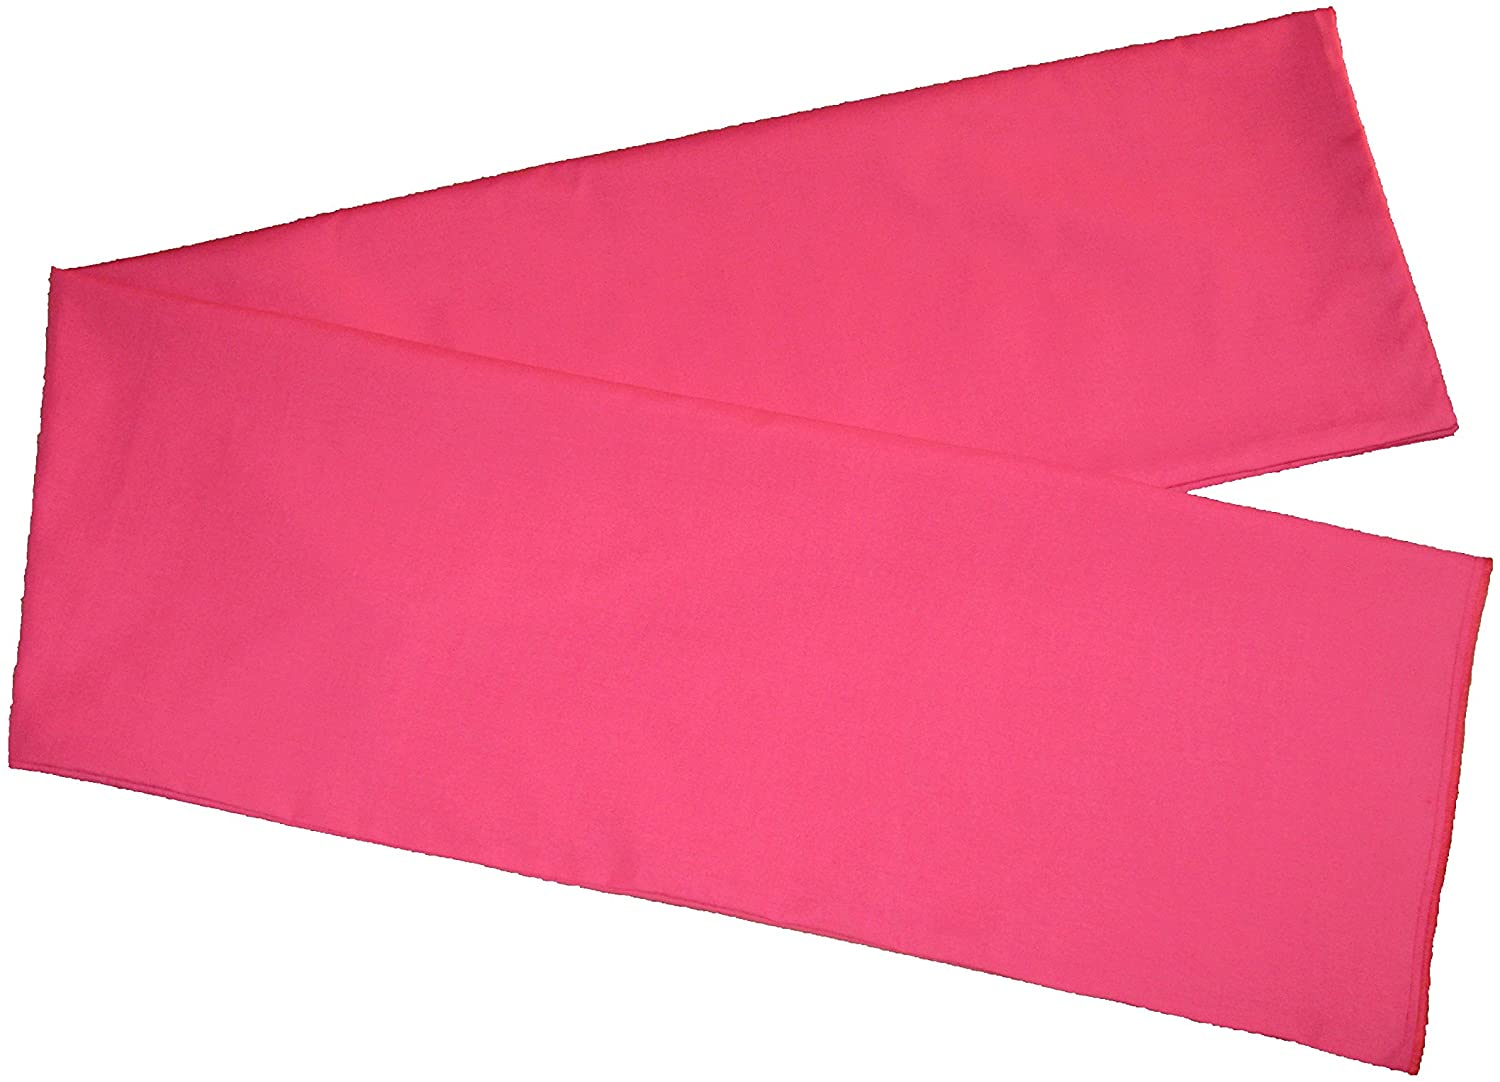 MoonRest Multiple Colors - Body Pillowcase 20 X 54-inch (Hot Pink/Fuchsia)